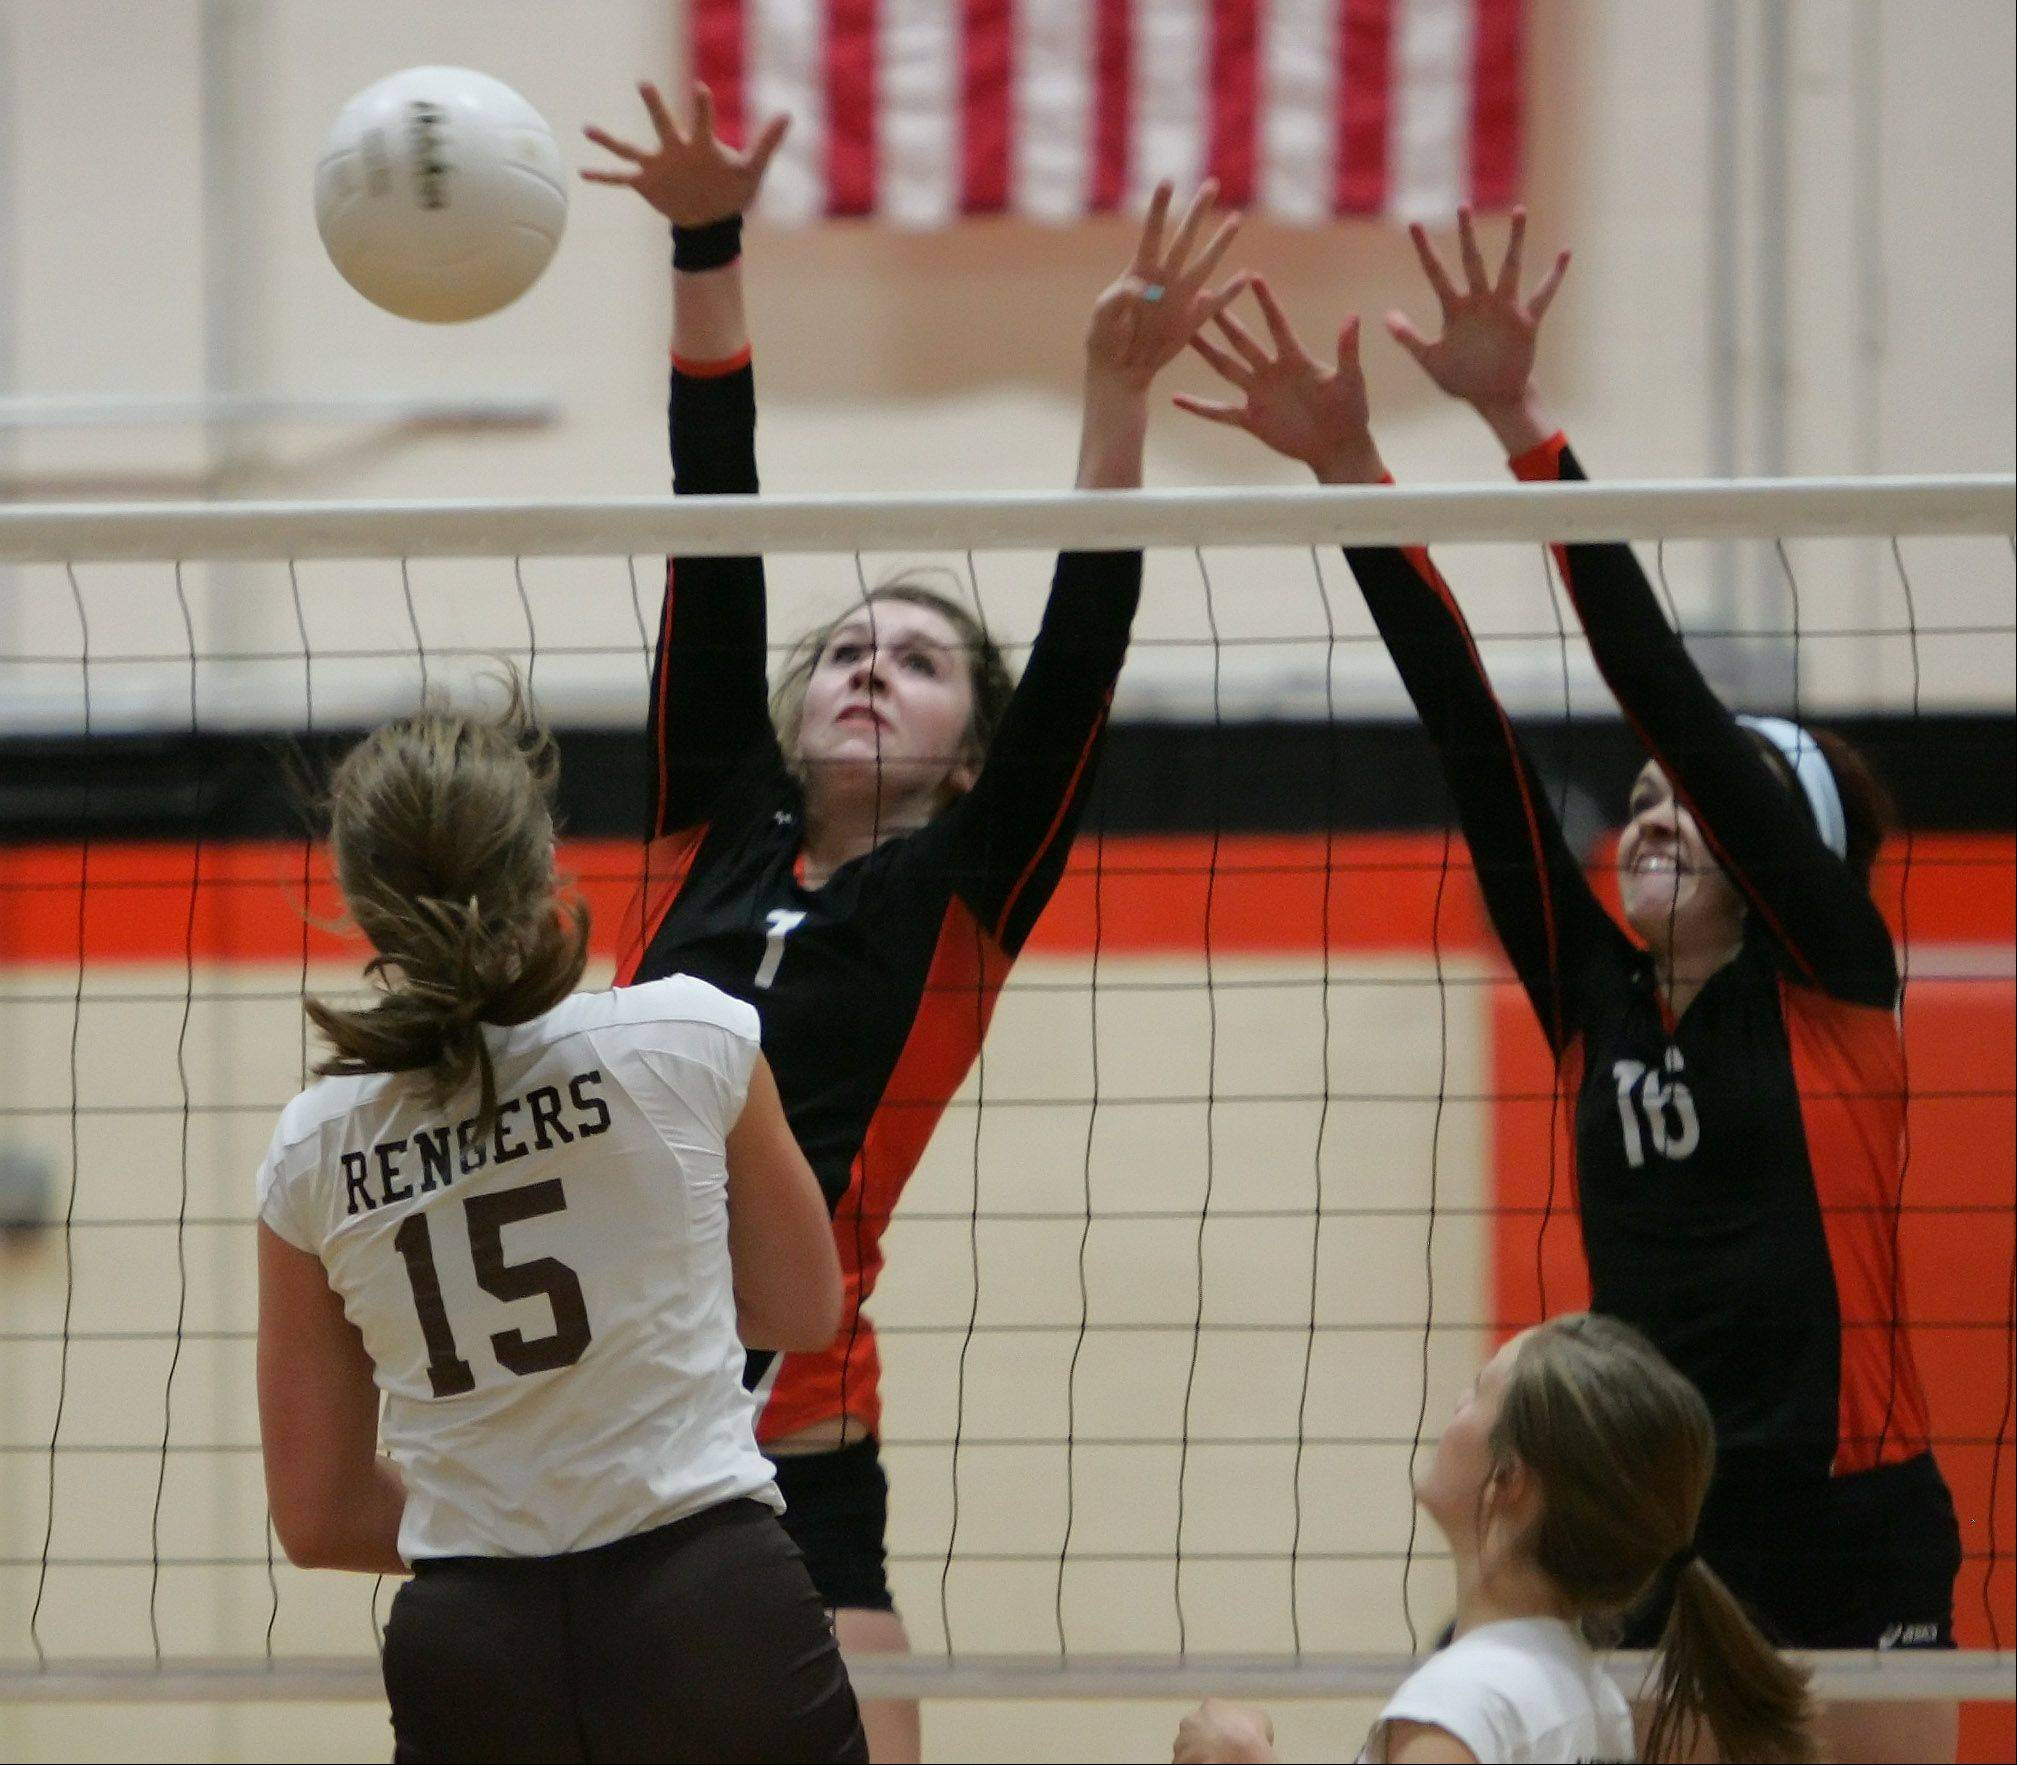 Carmel's Elizabeth Rengers hits the ball past Libertyville blockers Alex Basler and Rhiannon Prentiss on Monday at Libertyville.